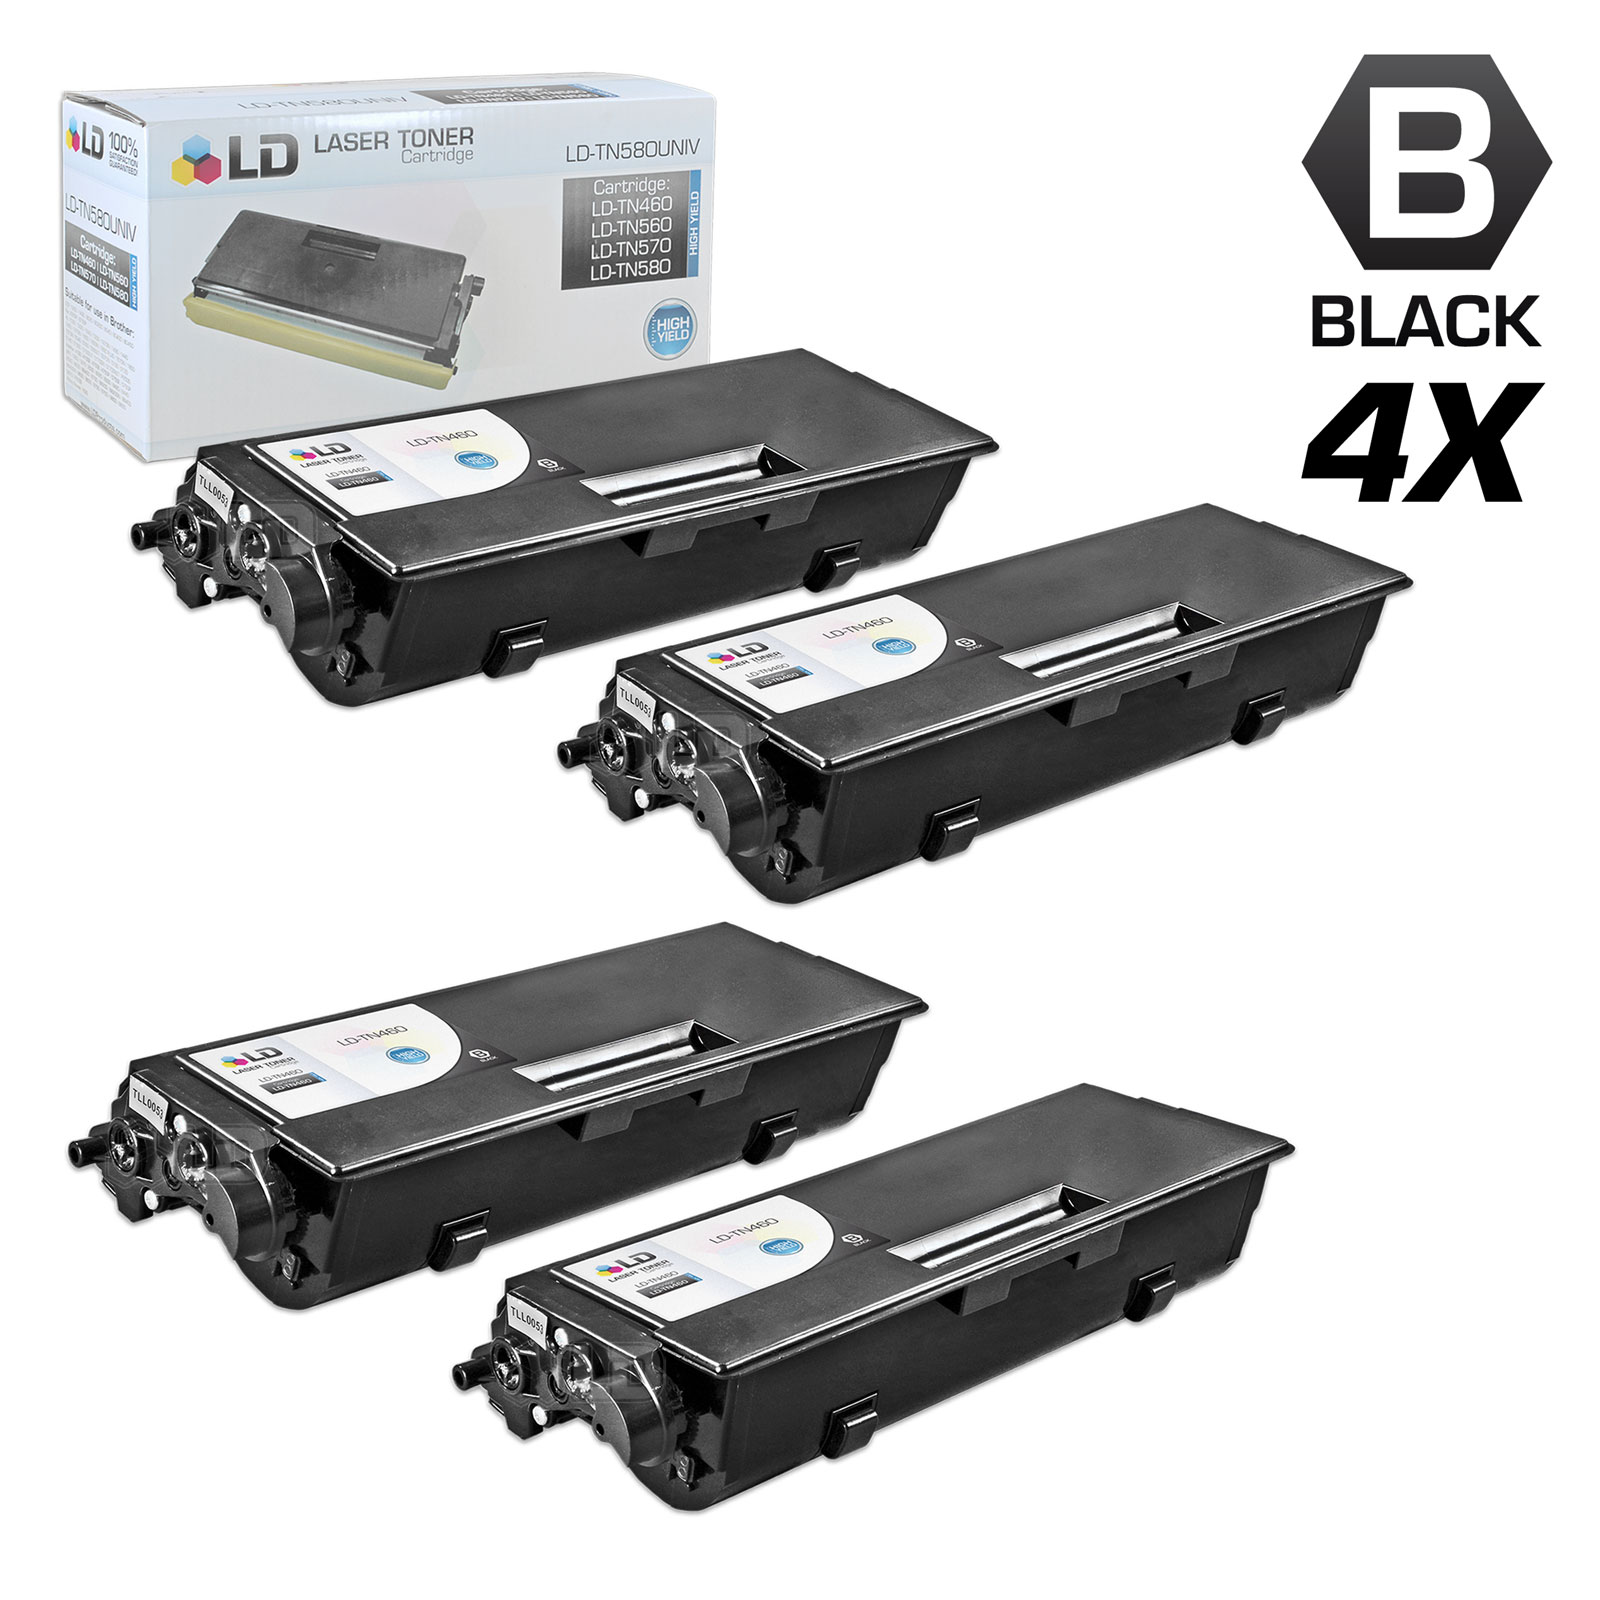 LD © Compatible Replacements for Brother TN460 Pack of 4 High Yield Black  Toner Cartridges for DCP-1200, DCP-1400, FAX 8350p, HL-1030, HL-1240,